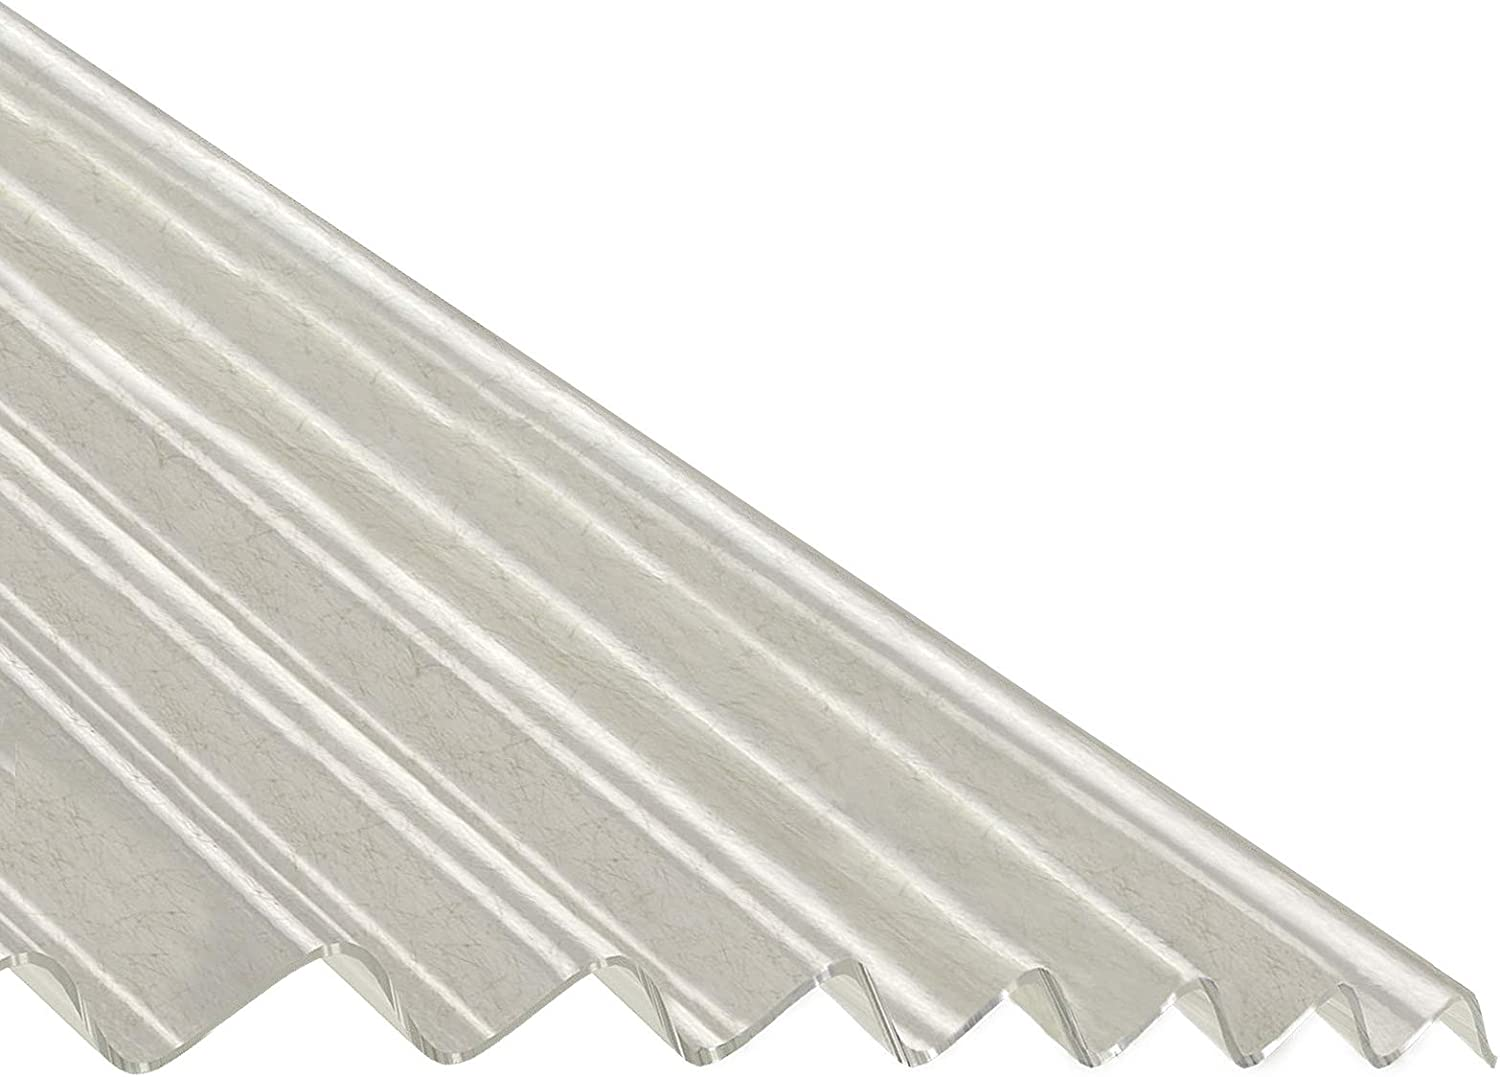 Translucent Grp Polyester Corrugated Roof Sheet Lean To Corrapol Roofing Amazon Co Uk Diy Tools